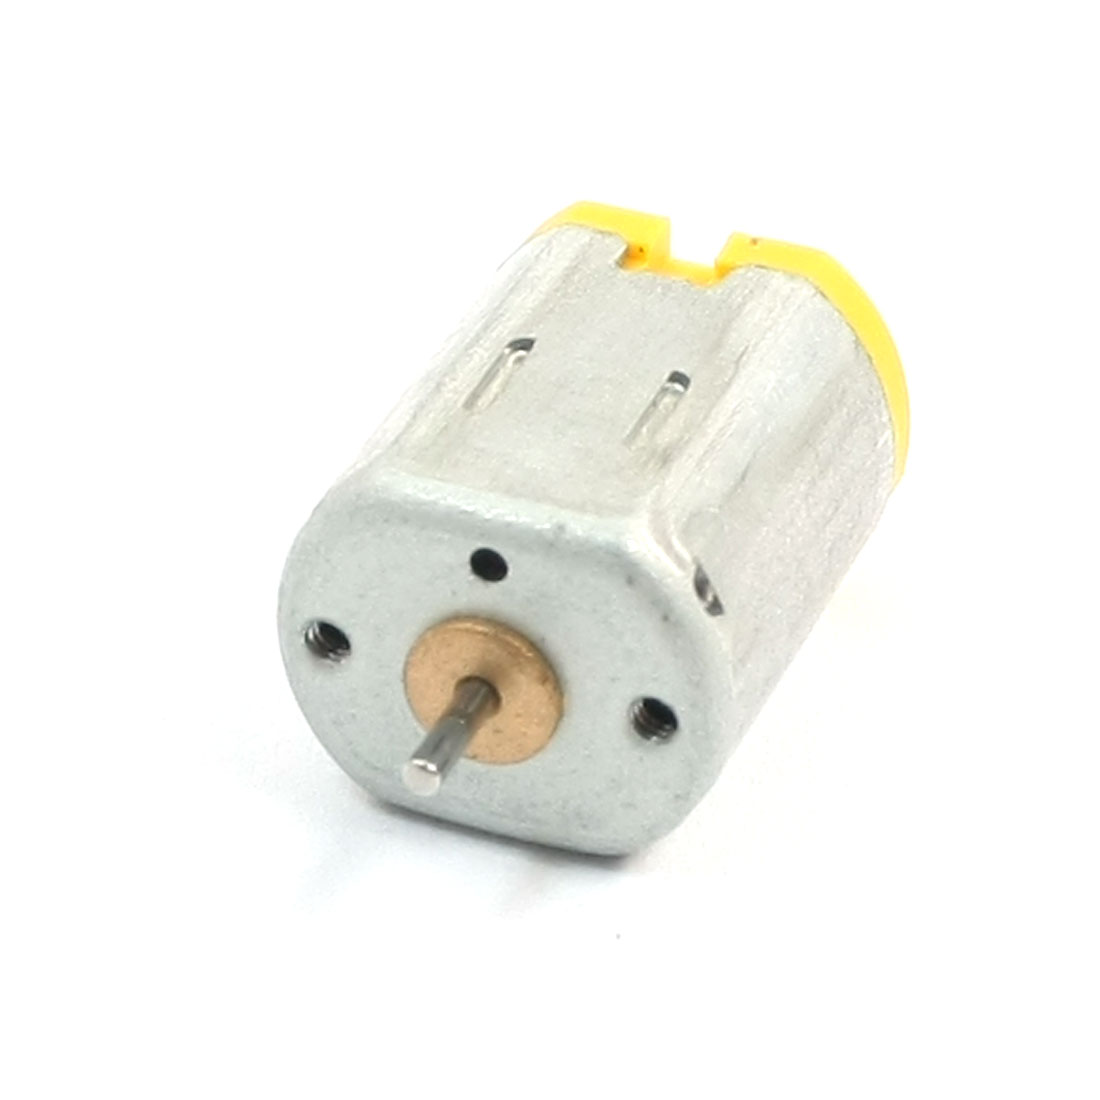 DC-3V-10000RPM-2-Pin-1mm-Drive-Shaft-Electric-Vibration-Motor